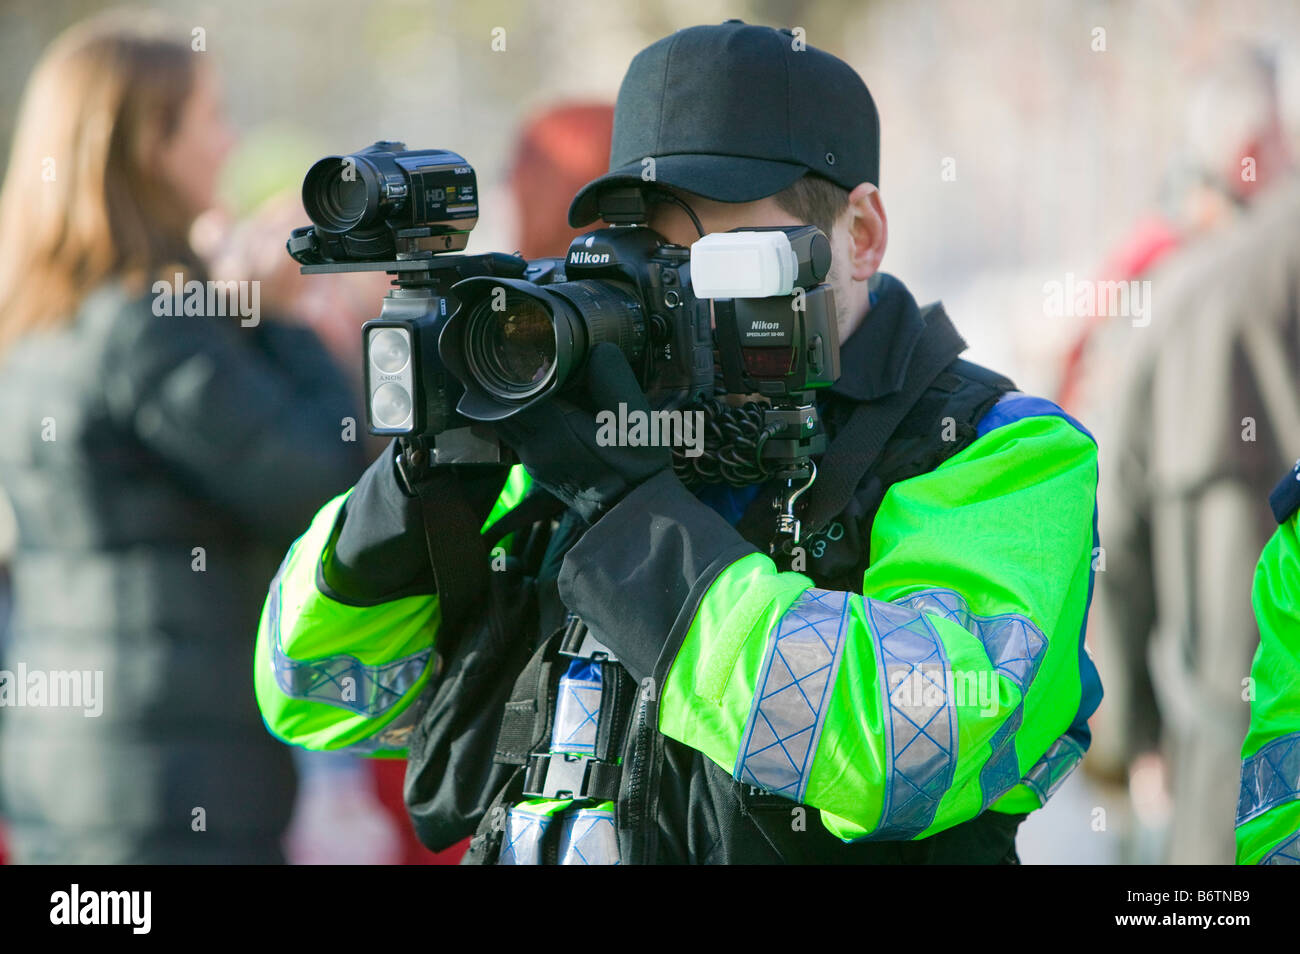 Police photographer photographing protestors at a climate change rally in London December 2008 Stock Photo